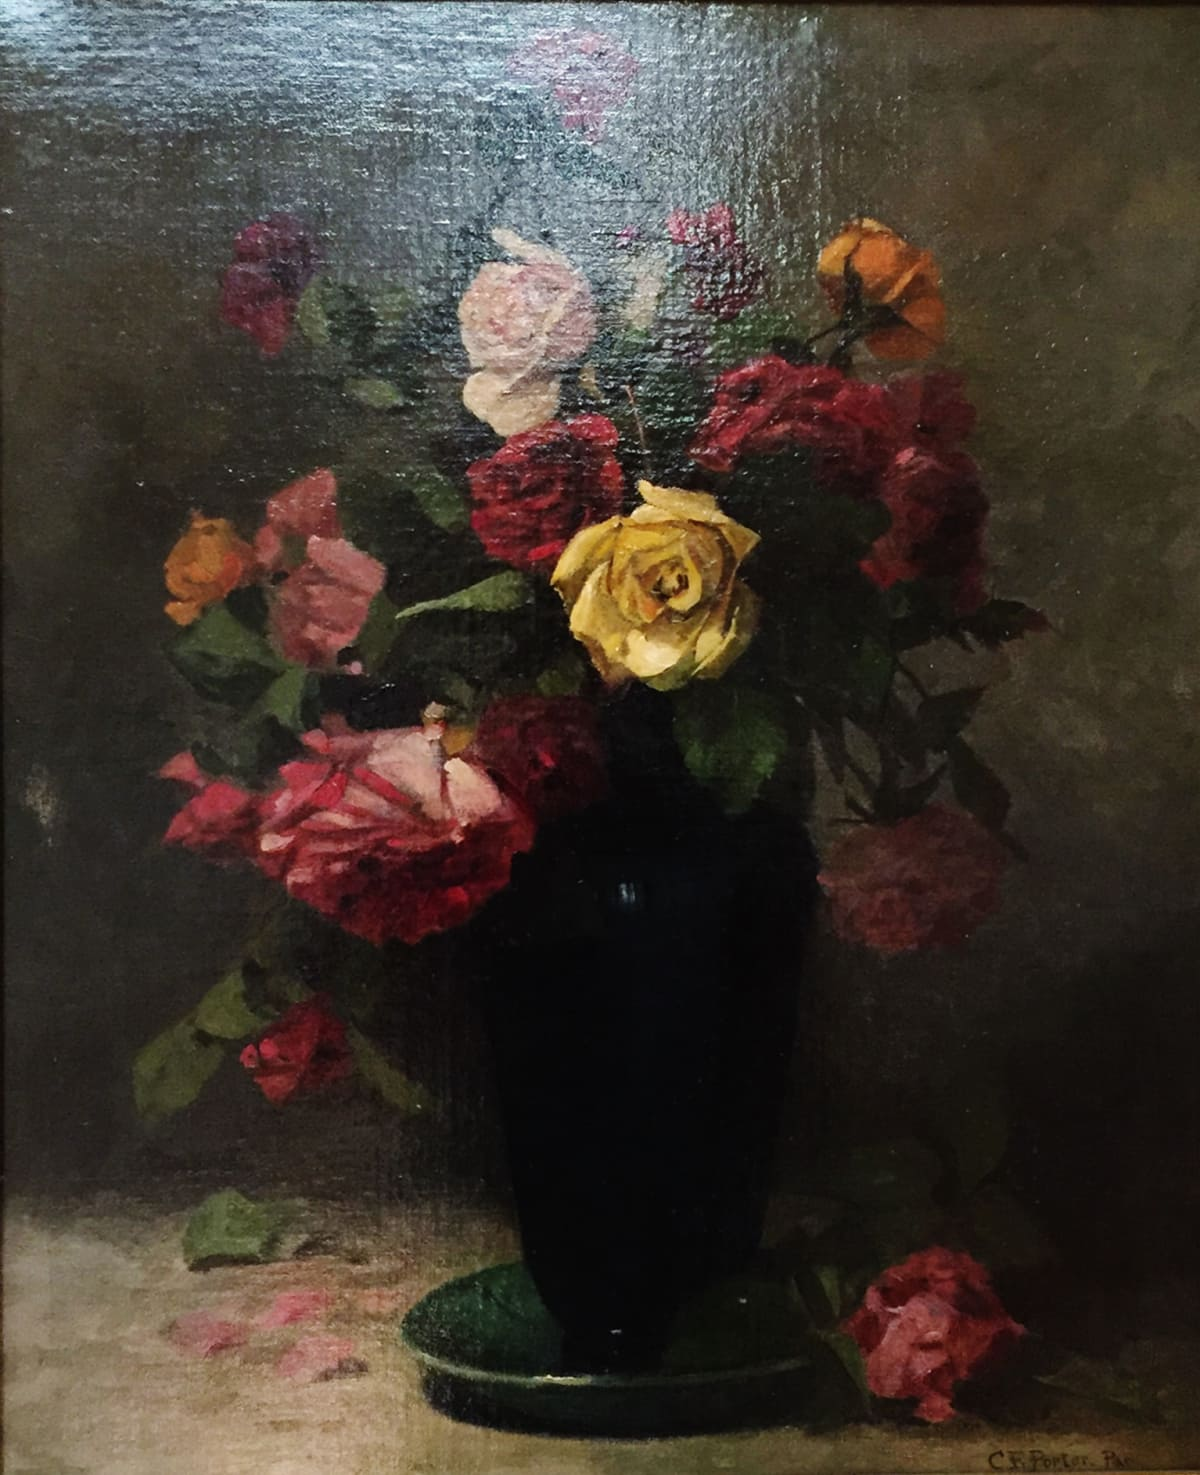 Charles Ethan Porter Untitled (Roses, Yellow Cntr Rose in Dark Blue Vase), c.1910 Oil on Canvas Framed: 27 x 31 x 3 Unframed: 24 1/4 x 20 1/4